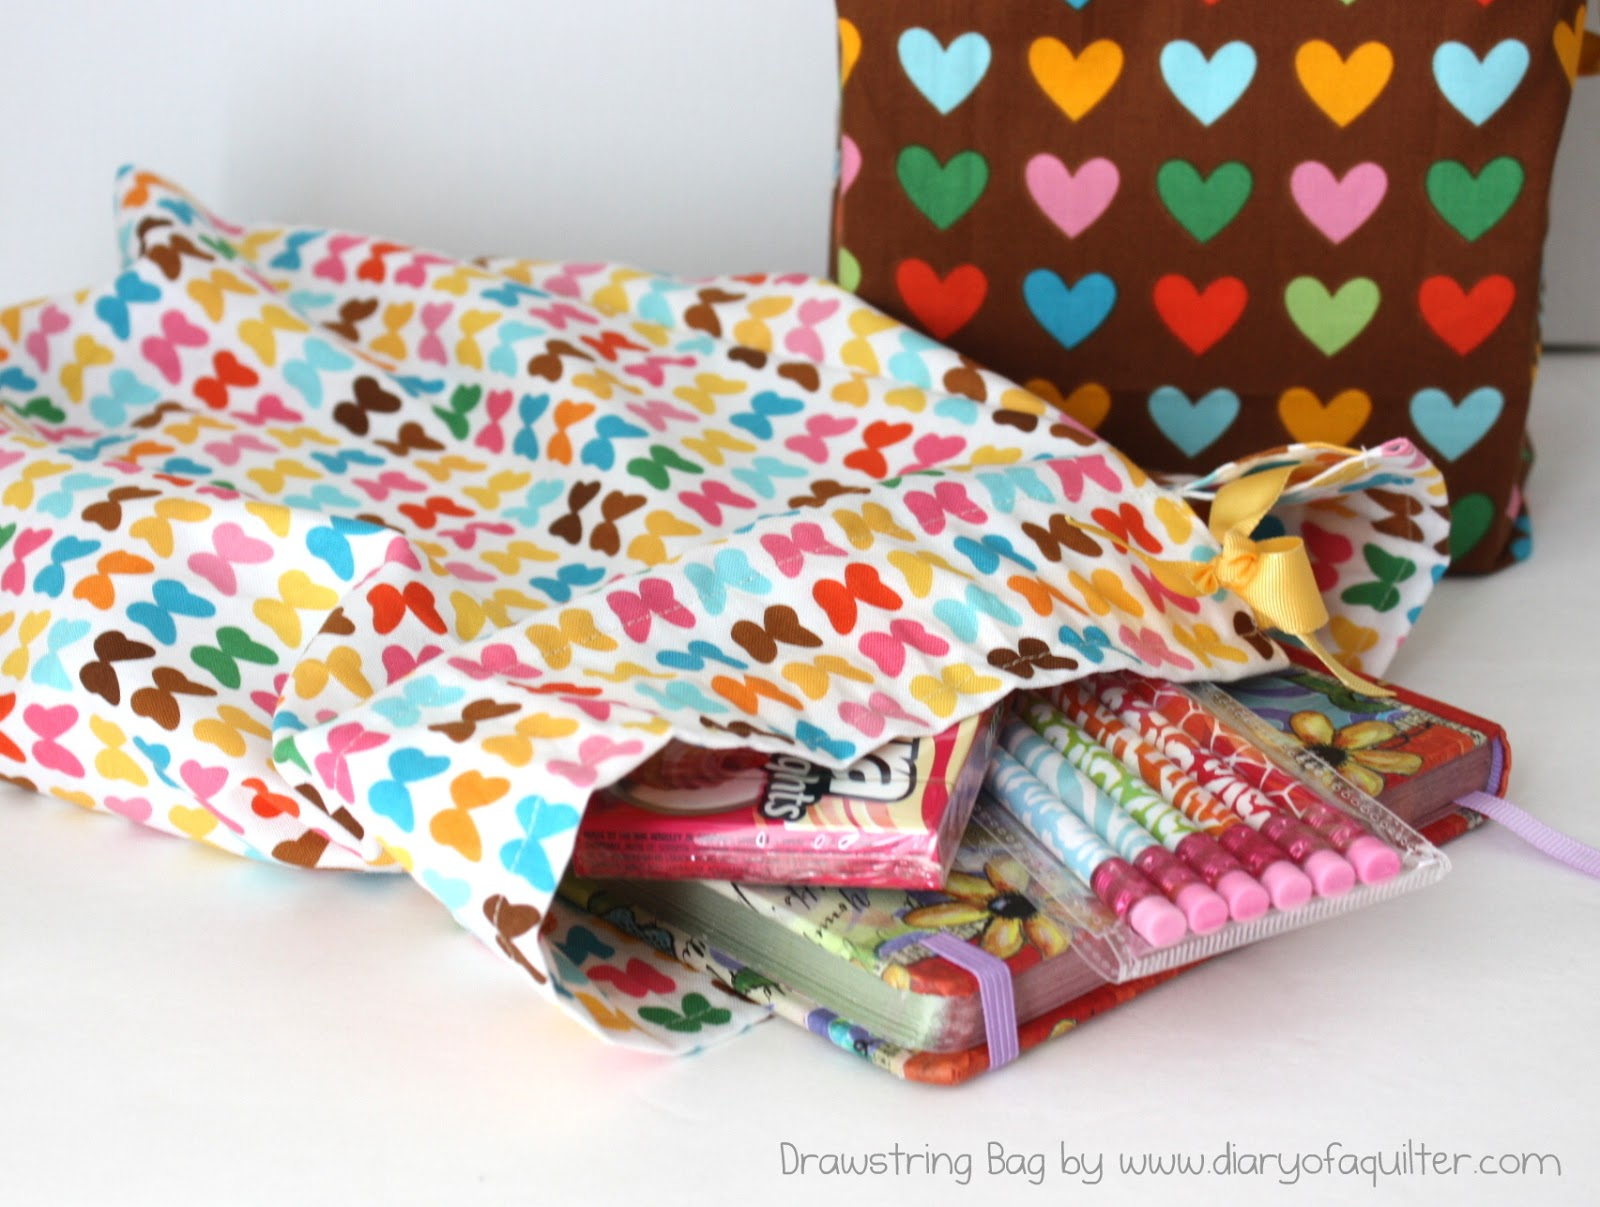 Diy Fat Quarter Projects Easy Fat Quarter Drawstring Bag Tutorial Diary Of A